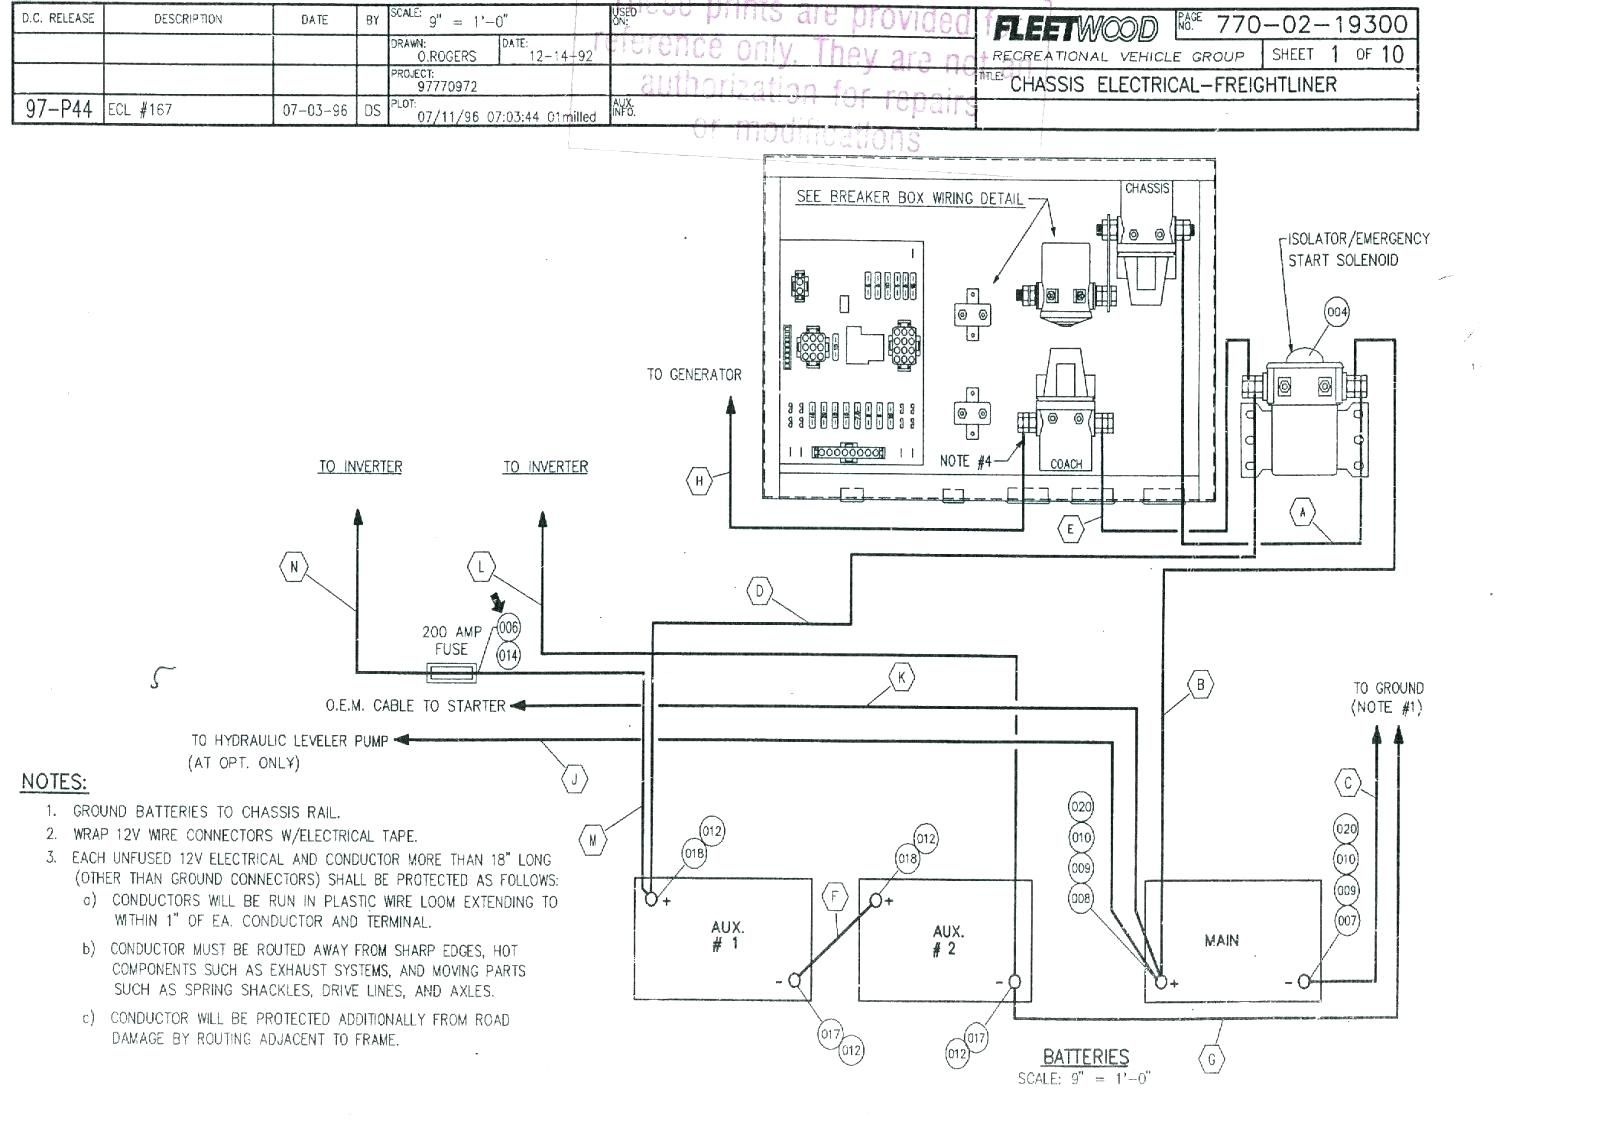 1987 Winnebago Chieftain Wiring Diagram Electron Dot For Carbon Schematic Pictures Itasca Diagrams